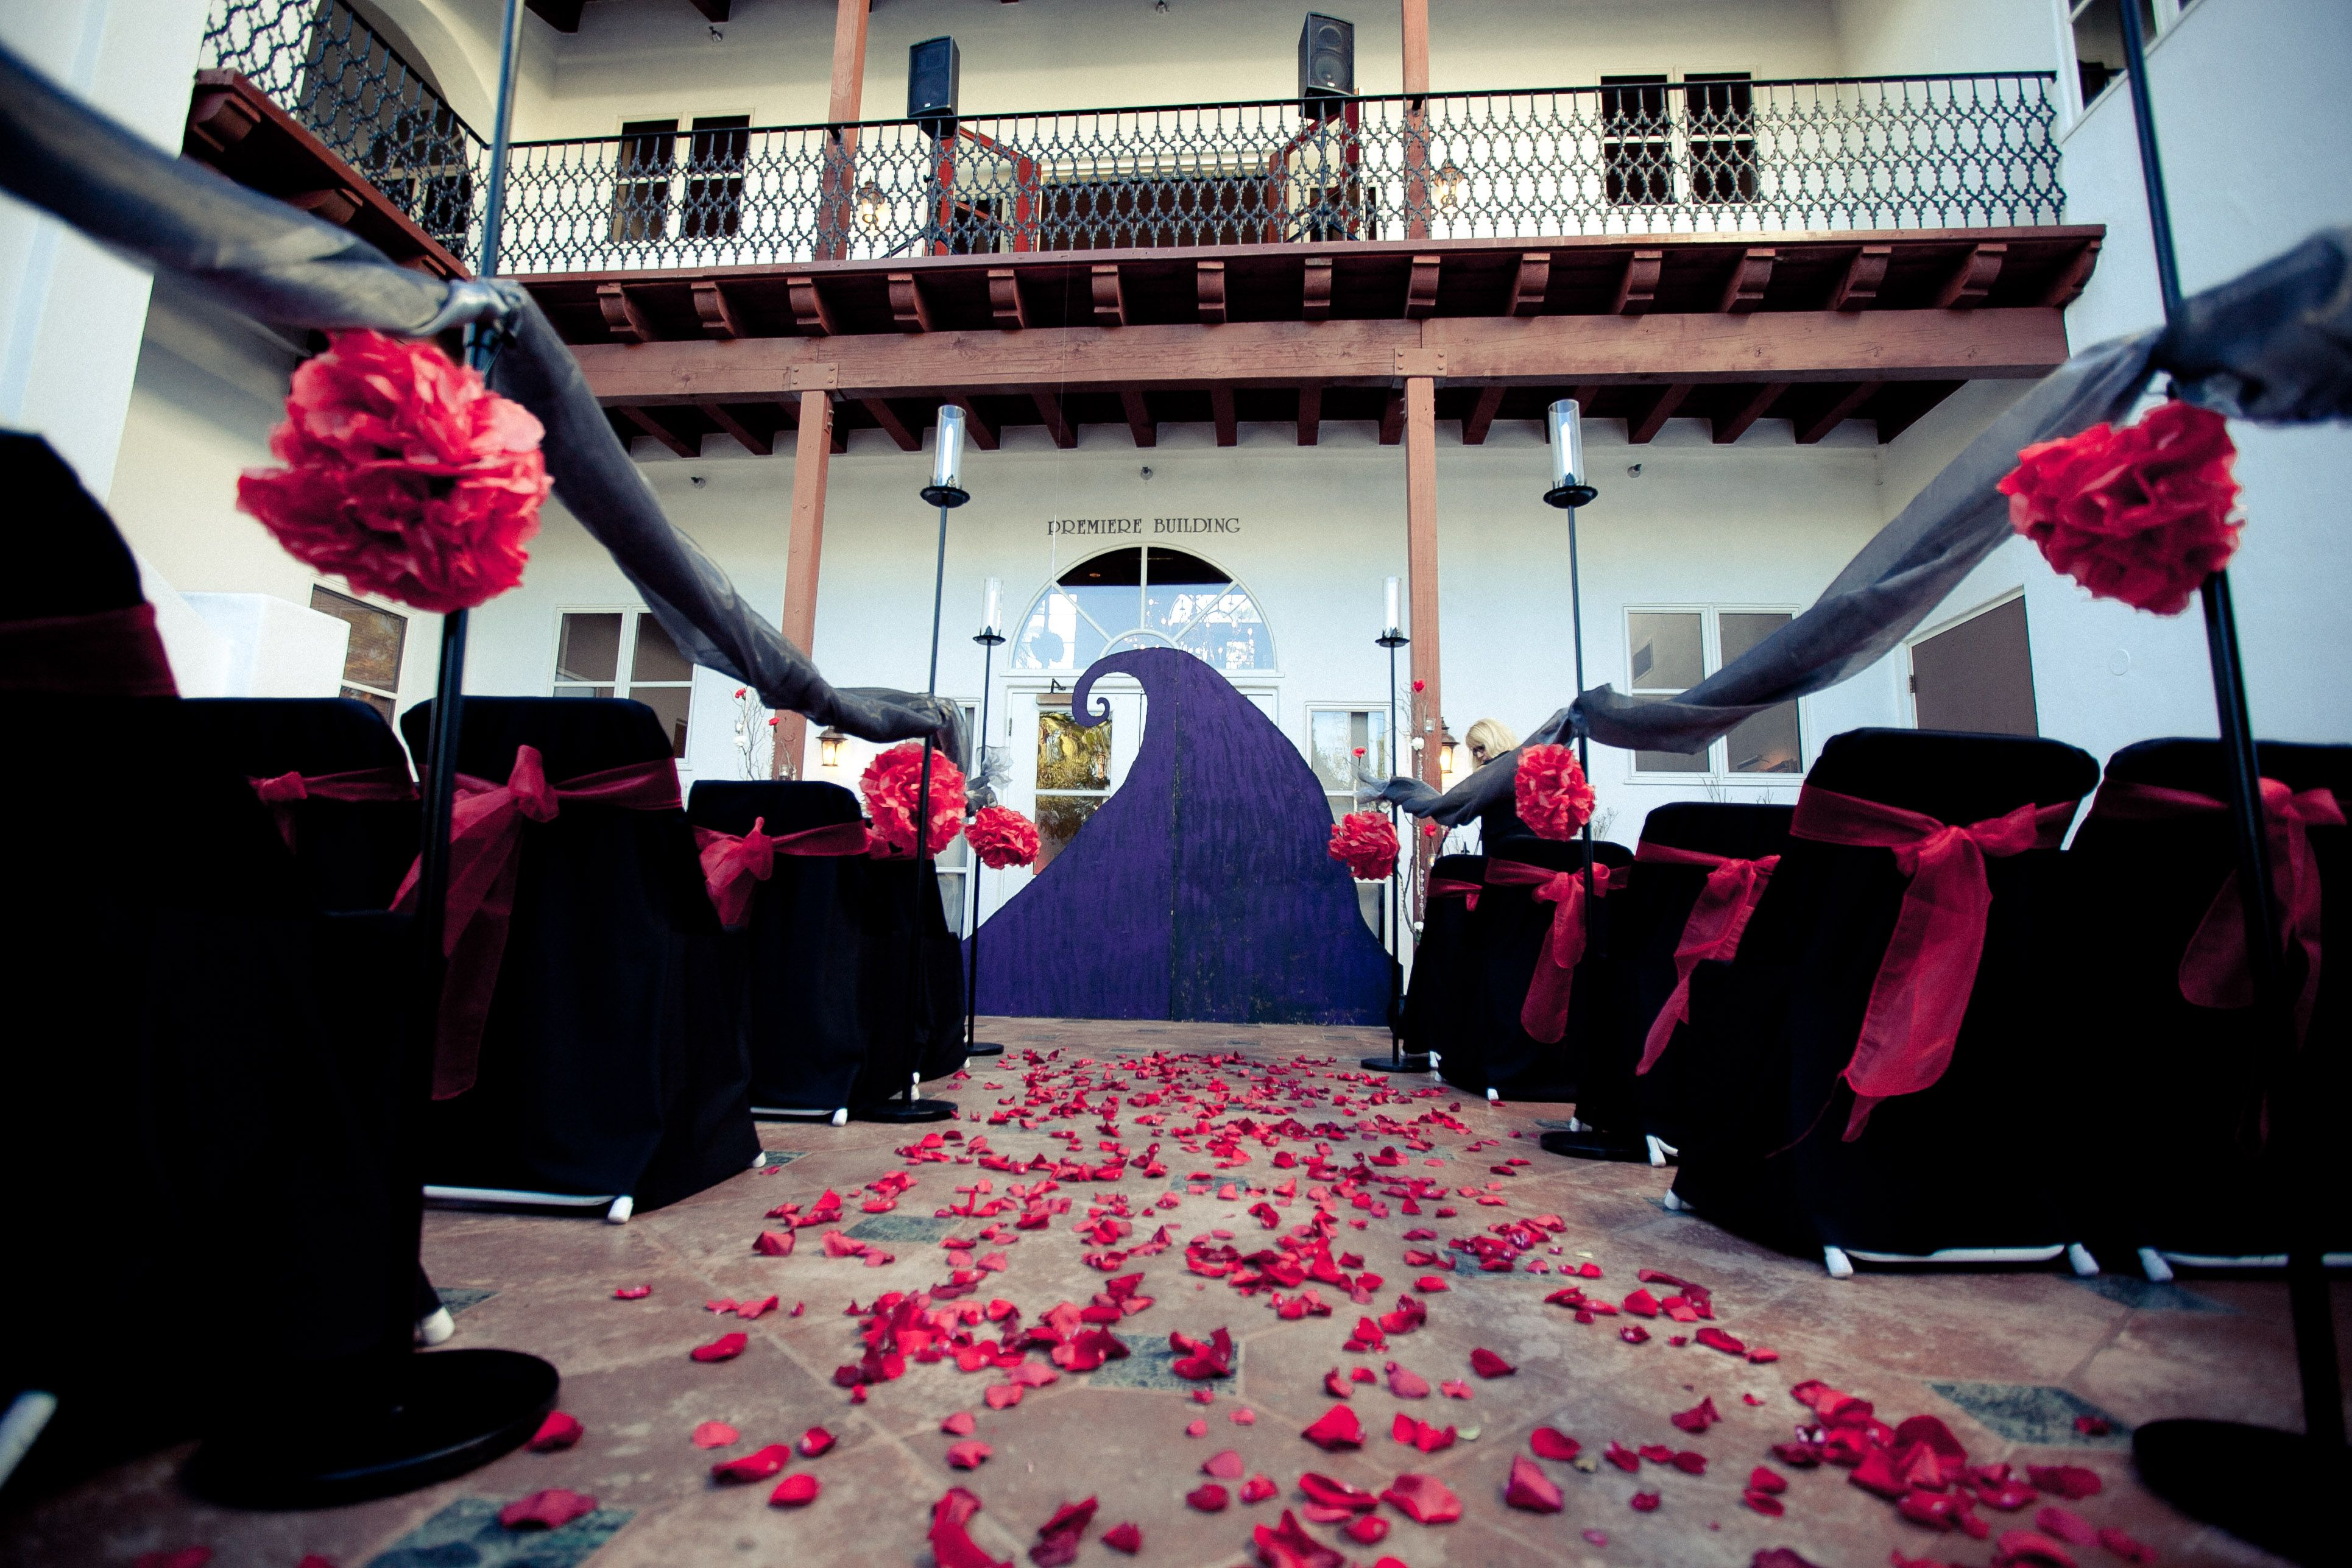 Nightmare Before Christmas Wedding Theme | www.topsimages.com